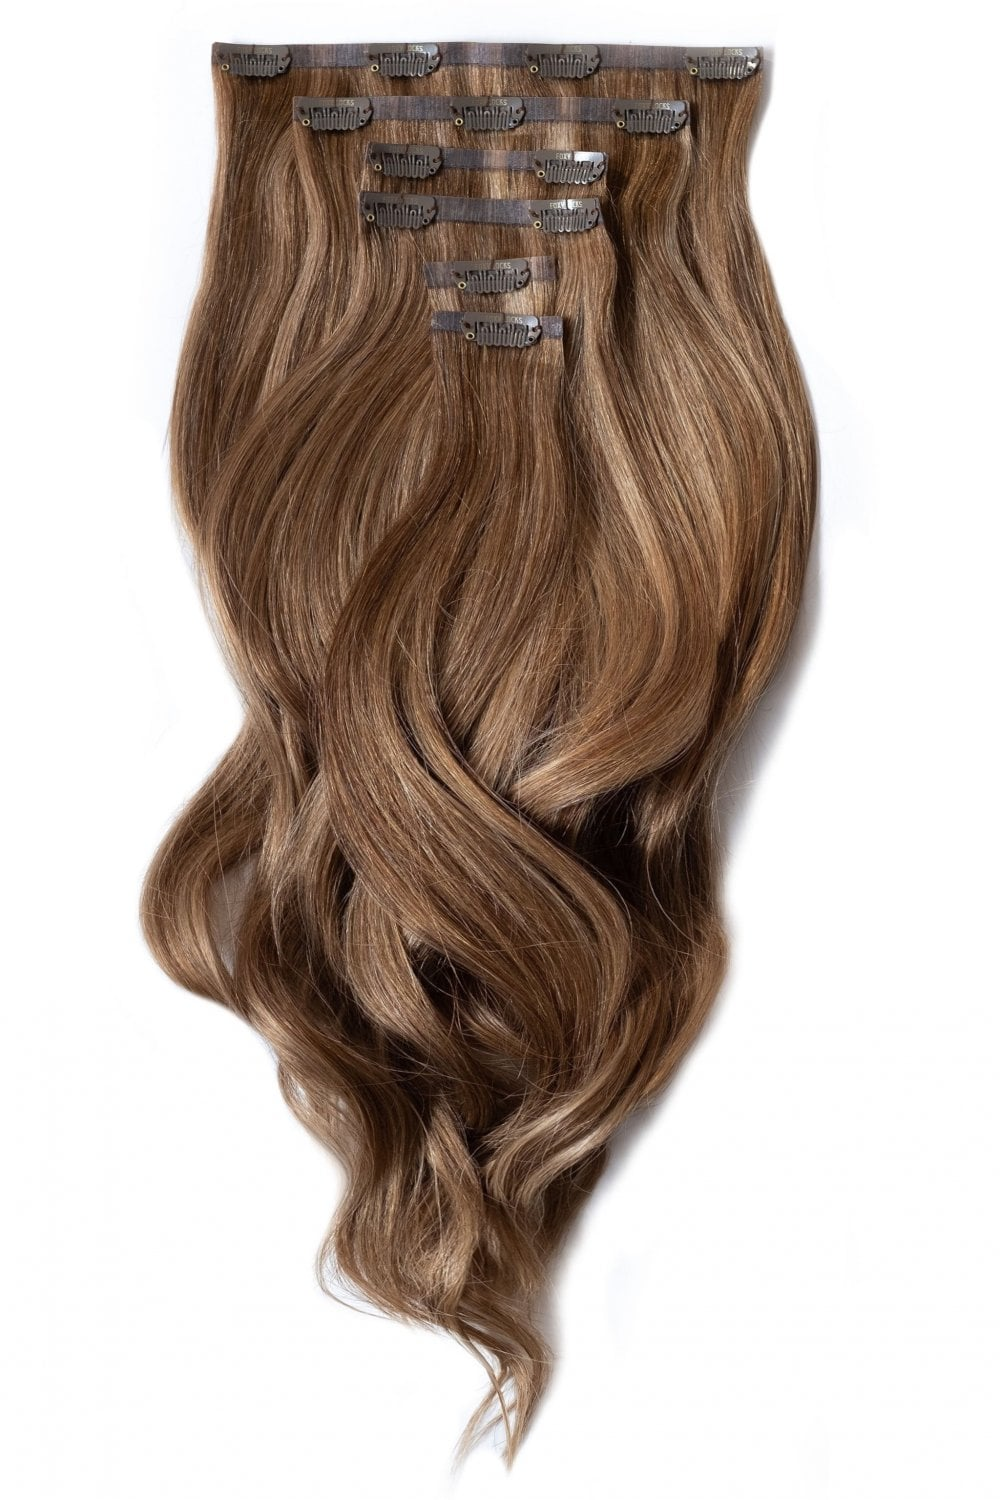 Sunkissed Highlights Seamless Deluxe 20 Clip In Hair Extensions 165g